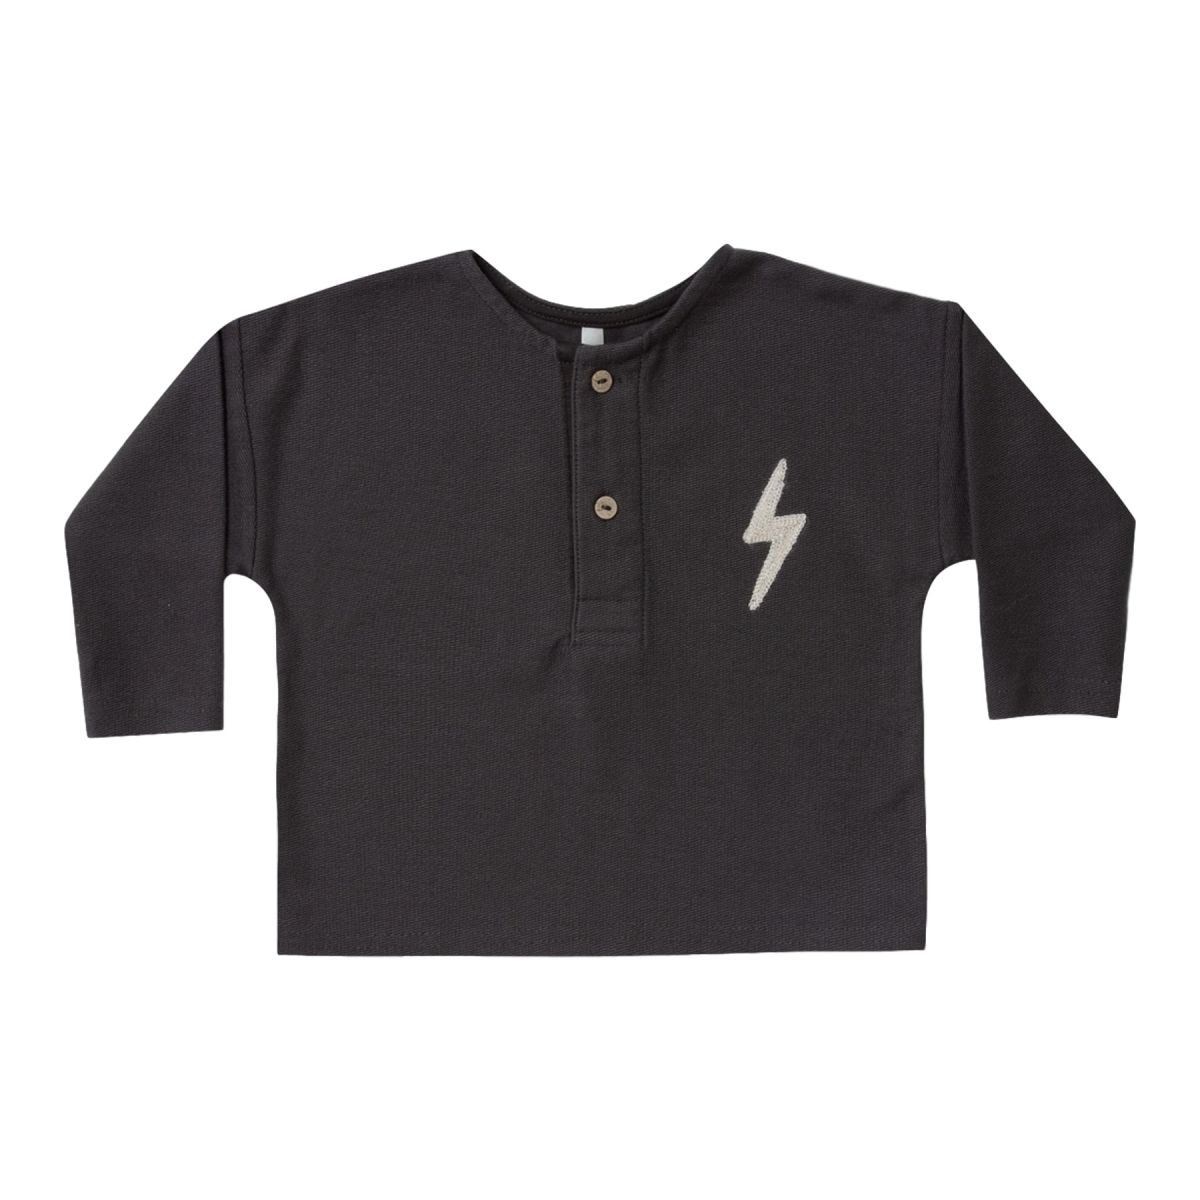 Sweatshirt henley bolt black